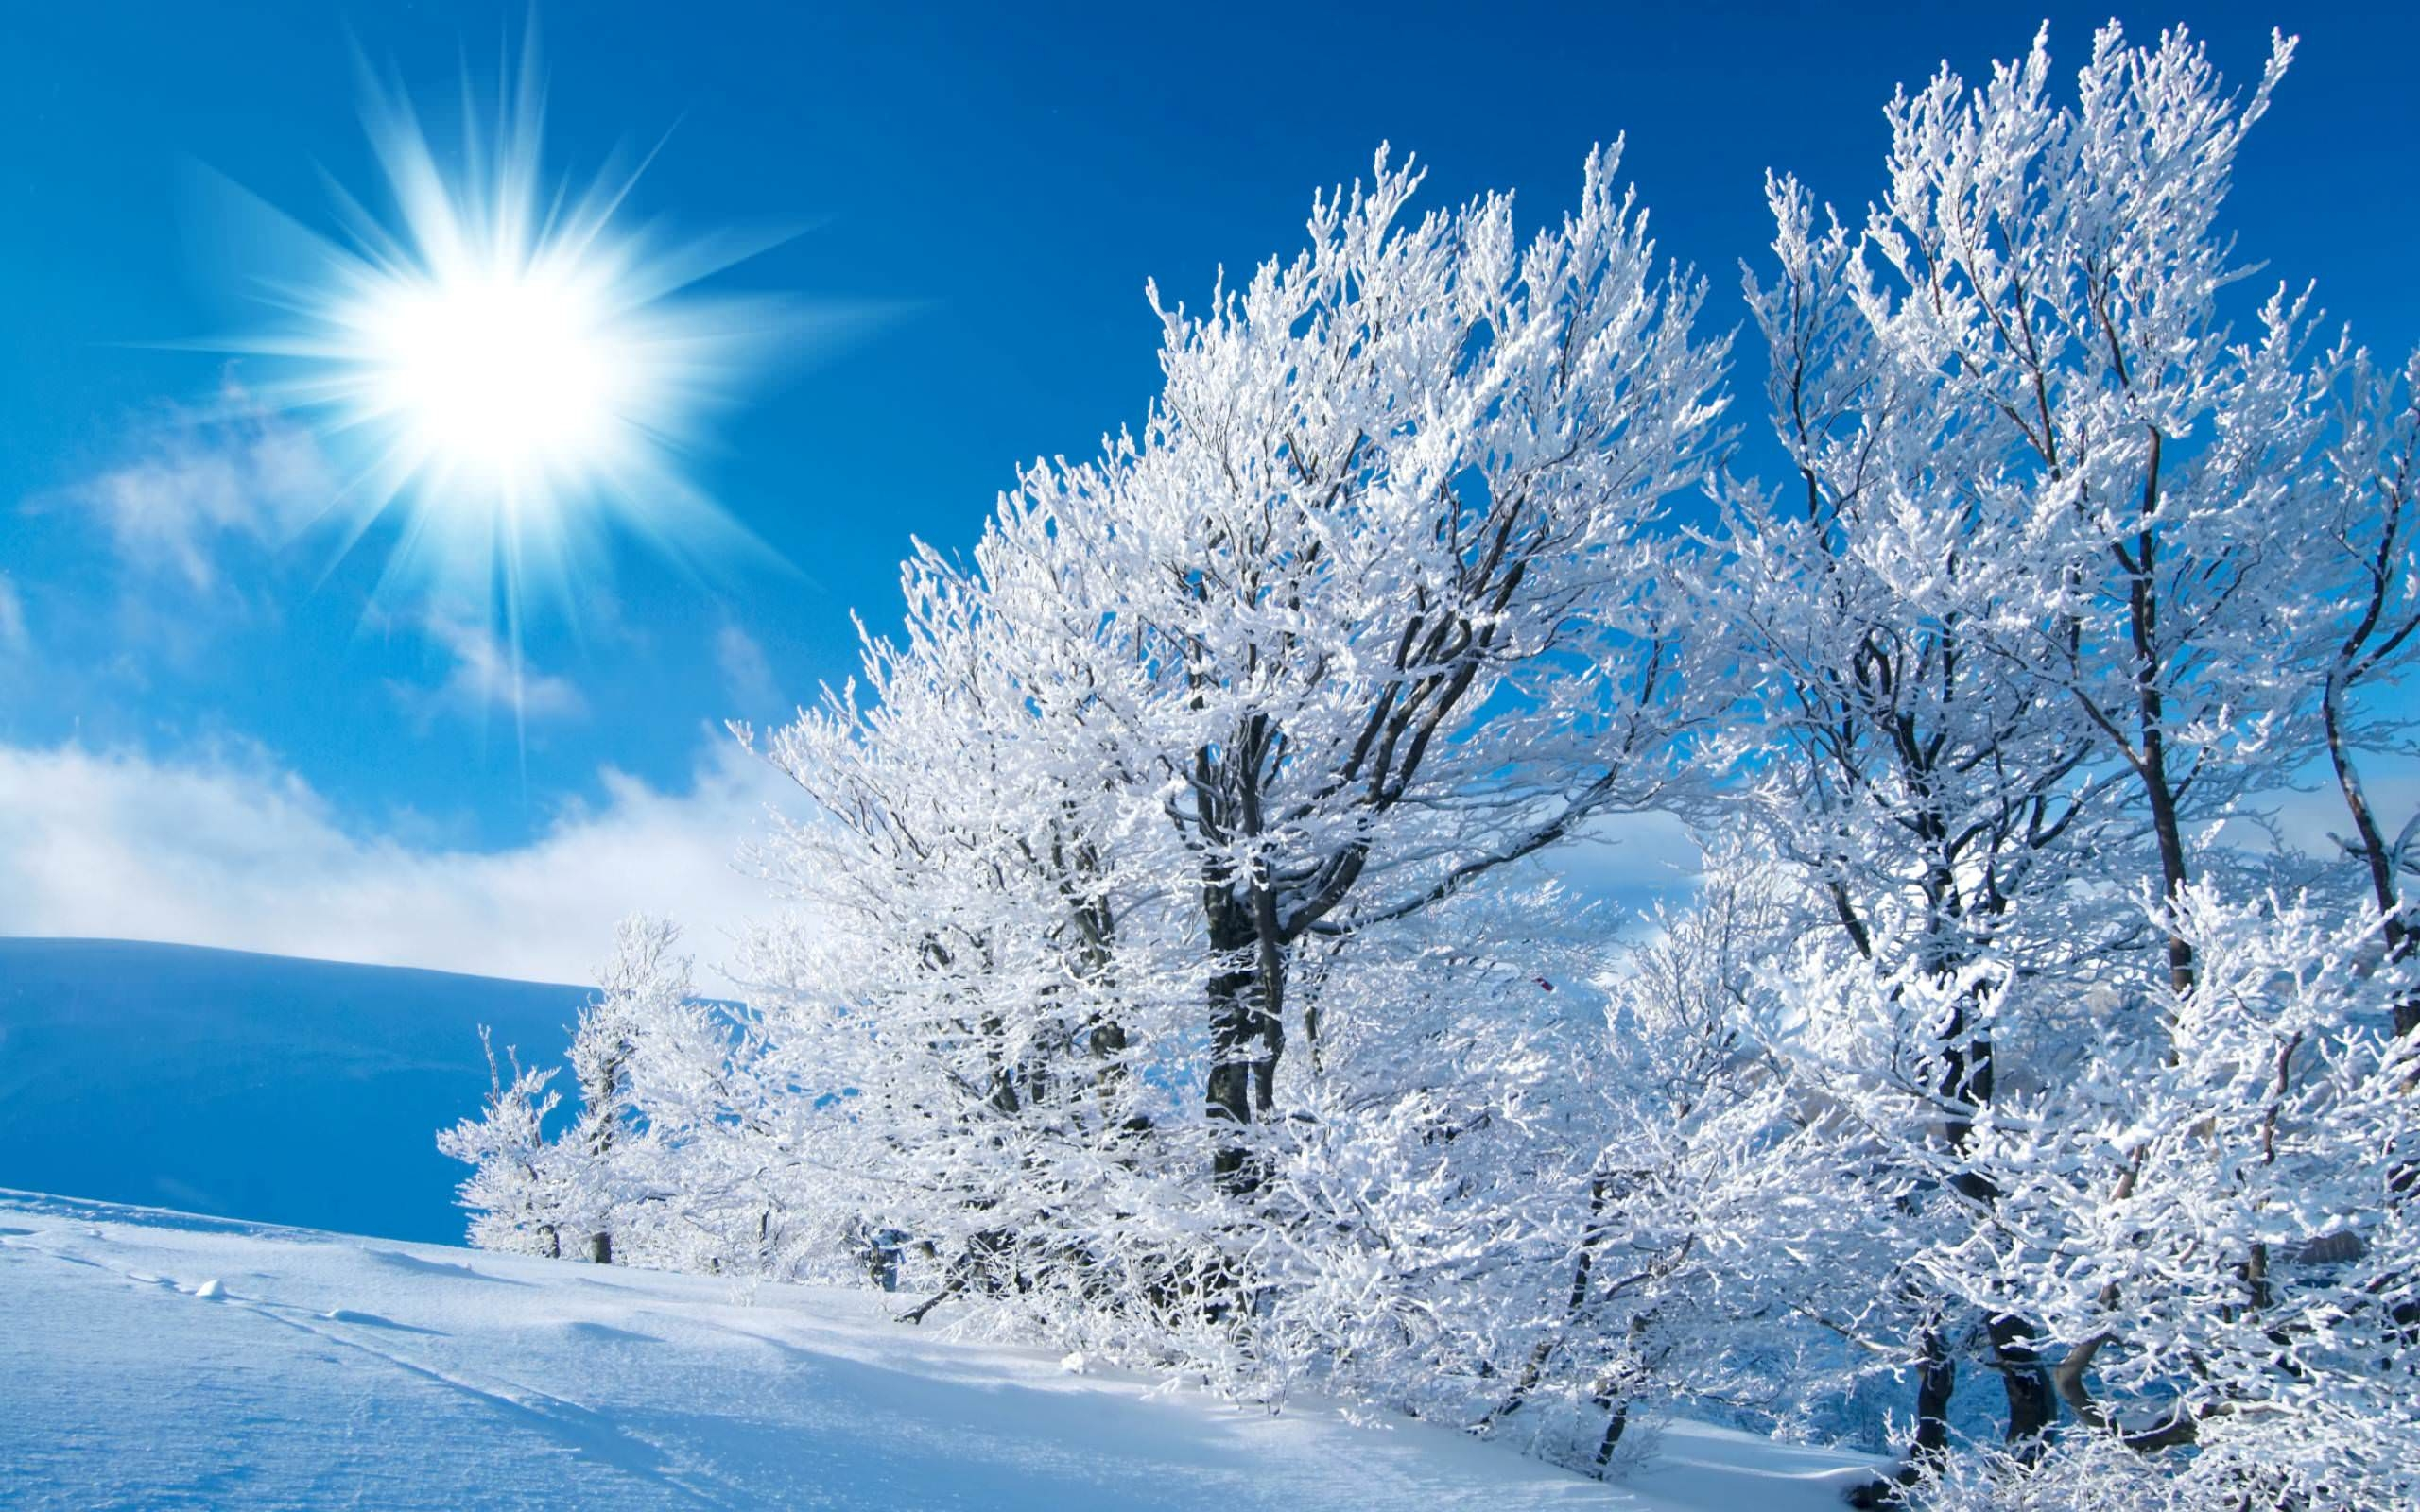 Winter HD Wallpaper For Download